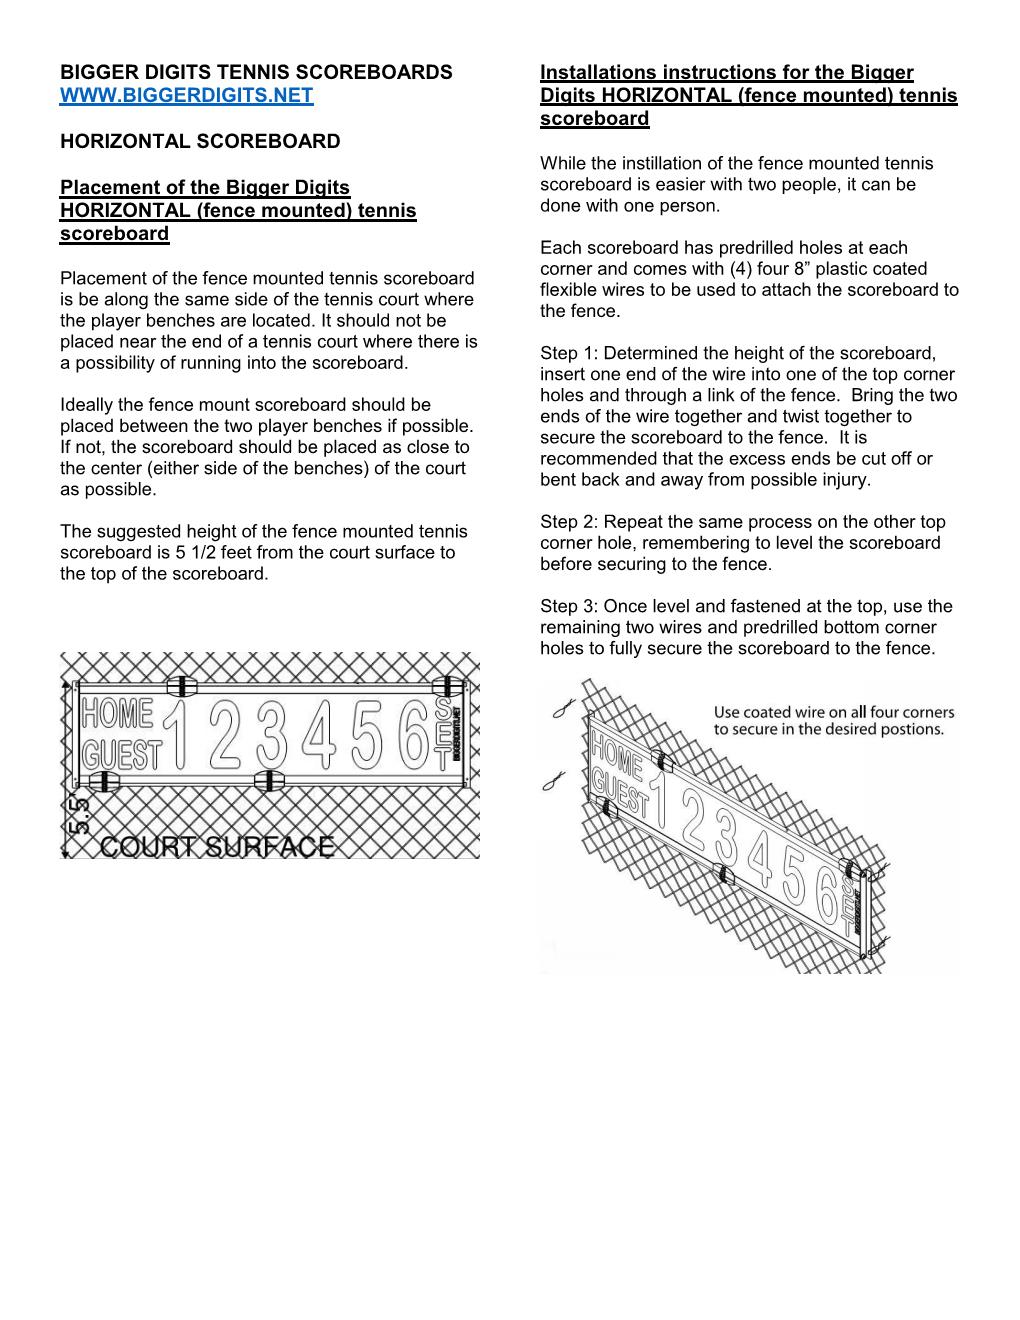 placement-and-installation-instructions-for-horizontal-and-vertical-units-page-001.jpg